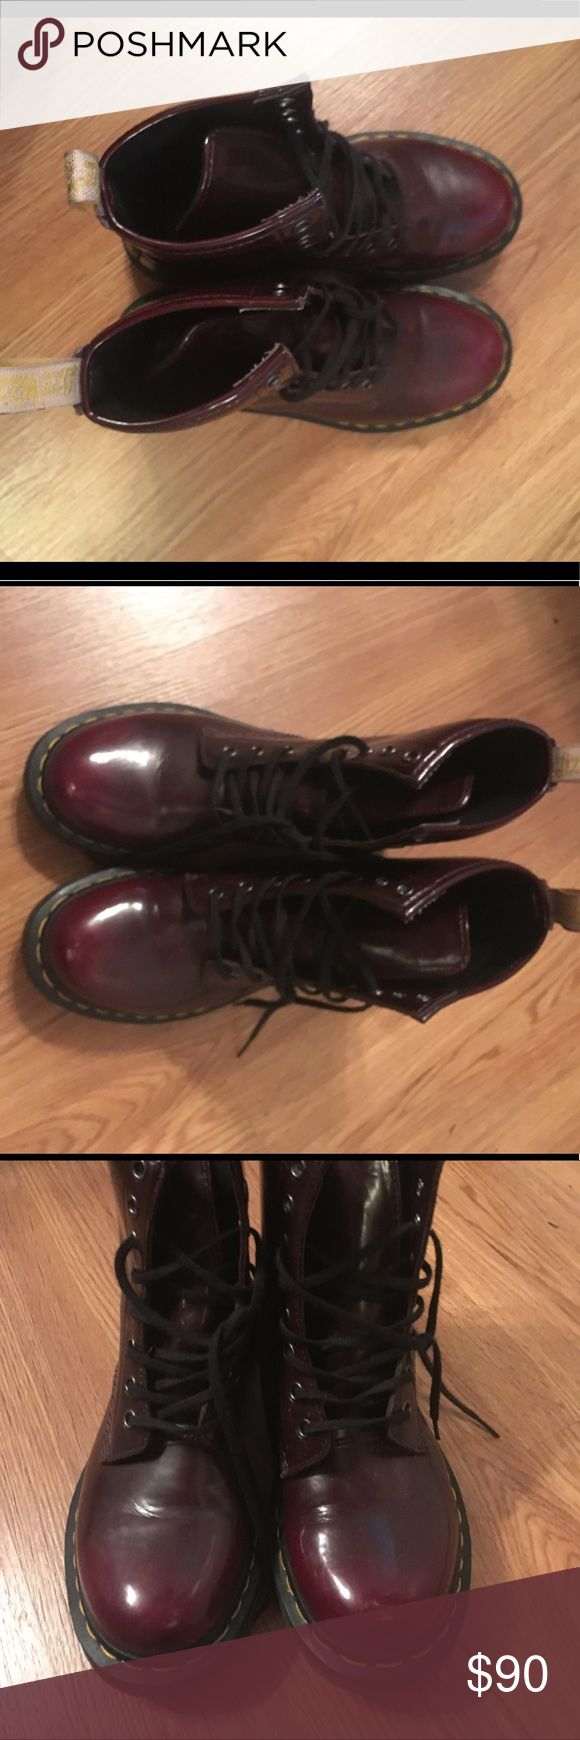 Cherry Red Doc Martens boots Cherry red Doc Martens Lace up combat boots! In excellent condition! Women's size 7 Dr. Martens Shoes Combat & Moto Boots